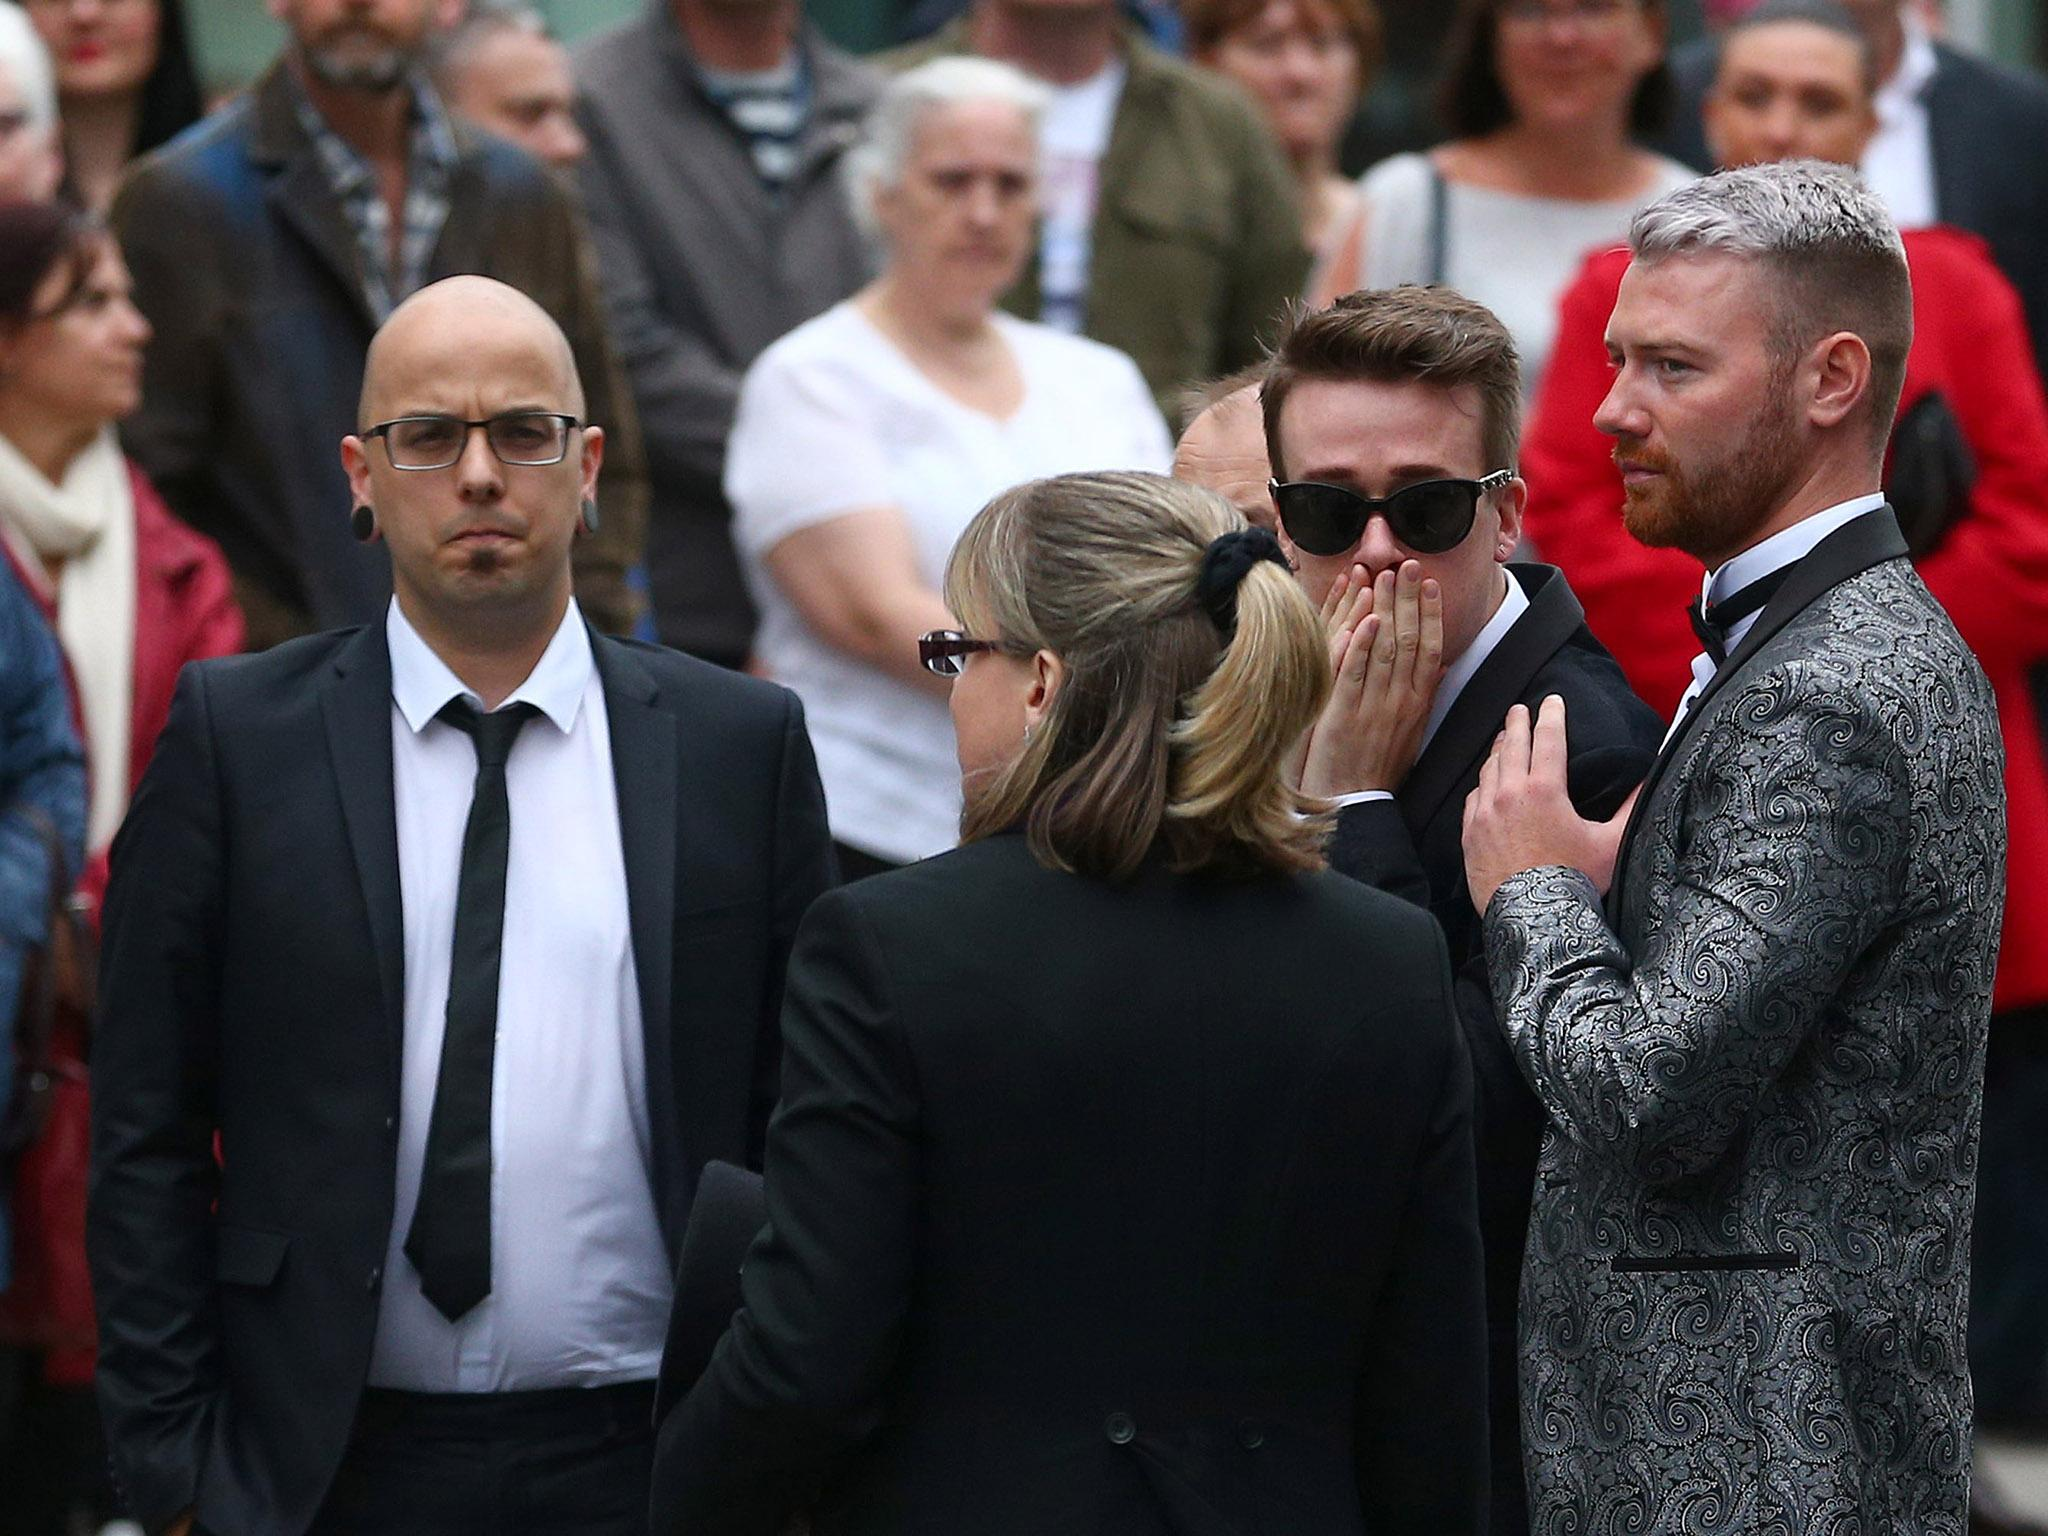 Brother of Manchester bombing victim reveals 'astonishing' abuse from far-right trolls